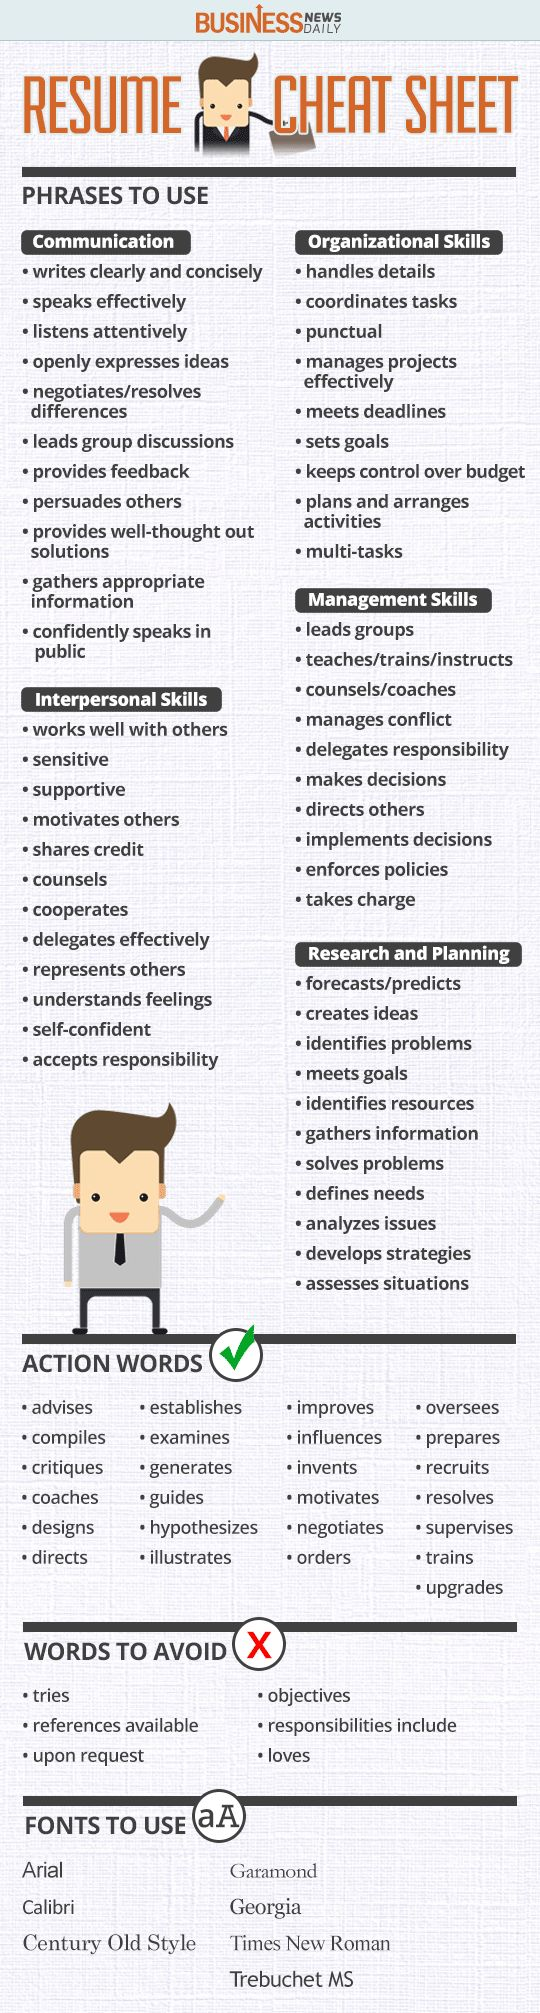 Opposenewapstandardsus  Marvellous  Ideas About Resume On Pinterest  Cv Format Resume Cv And  With Fetching Resume Cheat Sheet Infographic Andrews Almost Done With A Complete Unit On Employment Which With Divine Copy And Paste Resume Template Also Resume Vitae In Addition Free Resume Writing And Qa Manager Resume As Well As Microsoft Word Templates Resume Additionally Sample Of Resumes From Pinterestcom With Opposenewapstandardsus  Fetching  Ideas About Resume On Pinterest  Cv Format Resume Cv And  With Divine Resume Cheat Sheet Infographic Andrews Almost Done With A Complete Unit On Employment Which And Marvellous Copy And Paste Resume Template Also Resume Vitae In Addition Free Resume Writing From Pinterestcom